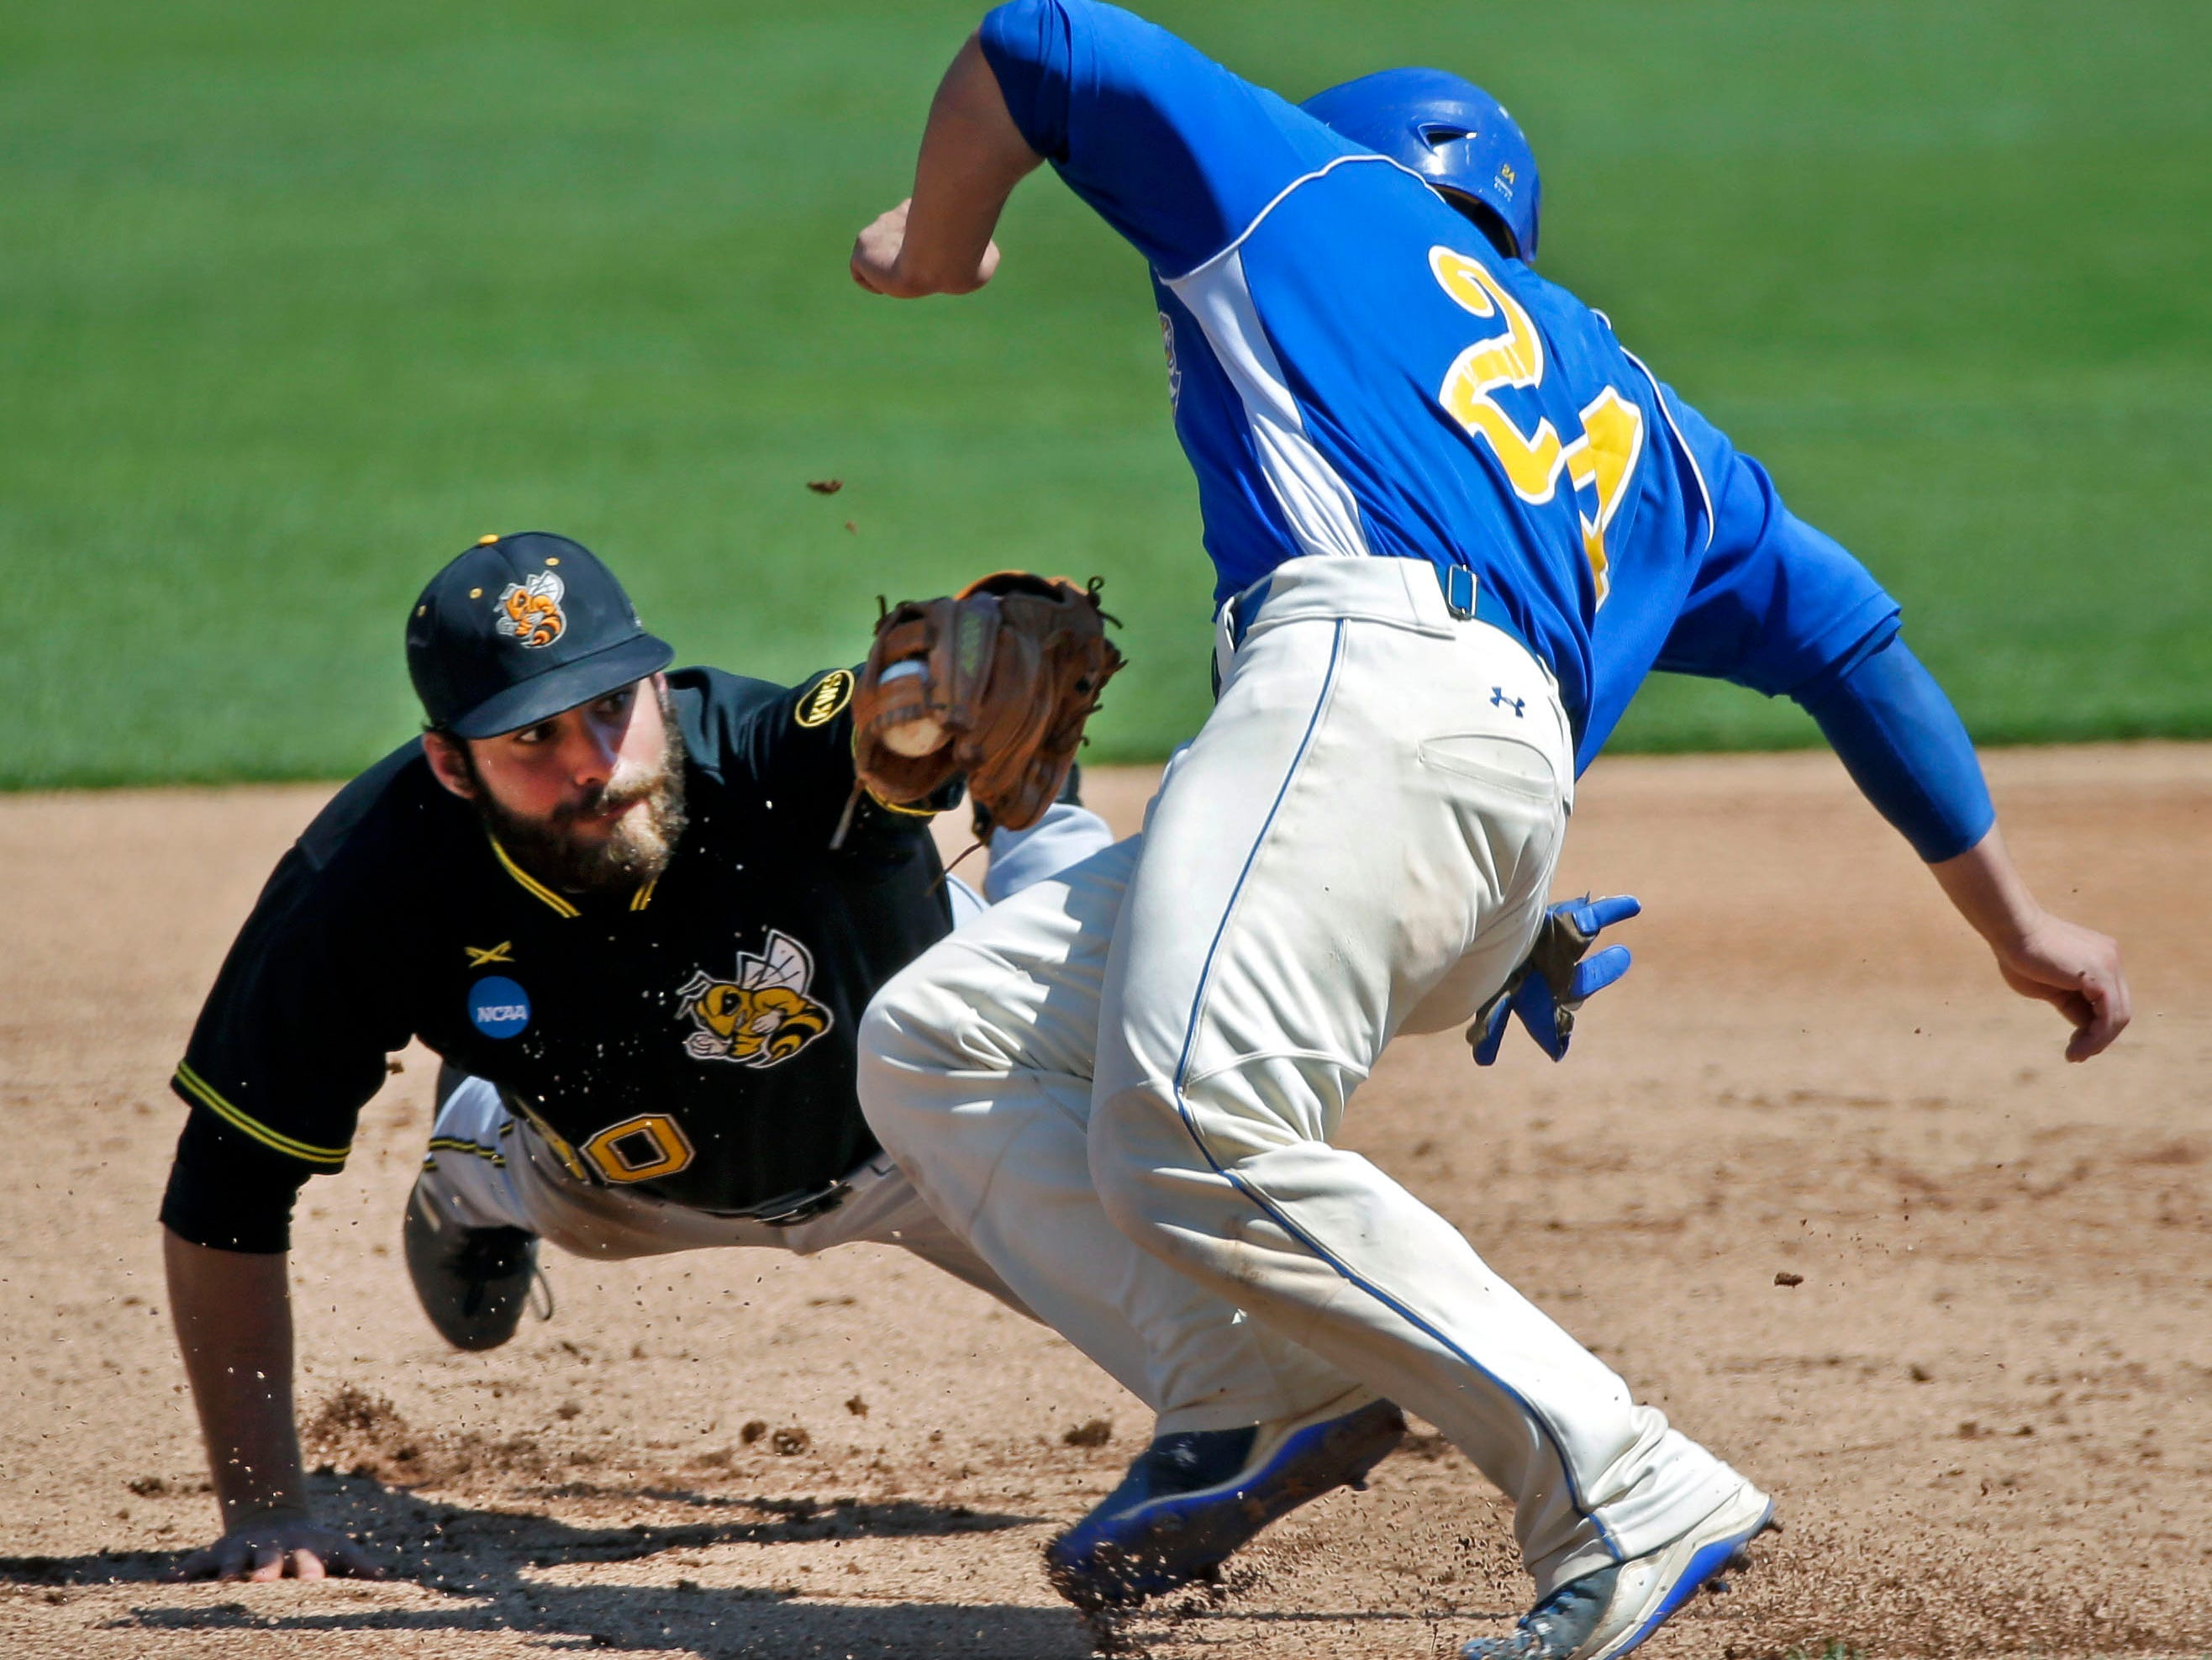 Santo Guinta of Misericordia University gets tagged at third by Michael Nickles of Randolph-Macon College Sunday, May 27, 2018, during the NCAA 2018 Division lll Baseball Championship at Neuroscience Group Field at Fox Cities Stadium in Grand Chute, Wis. The games continue through May 29.